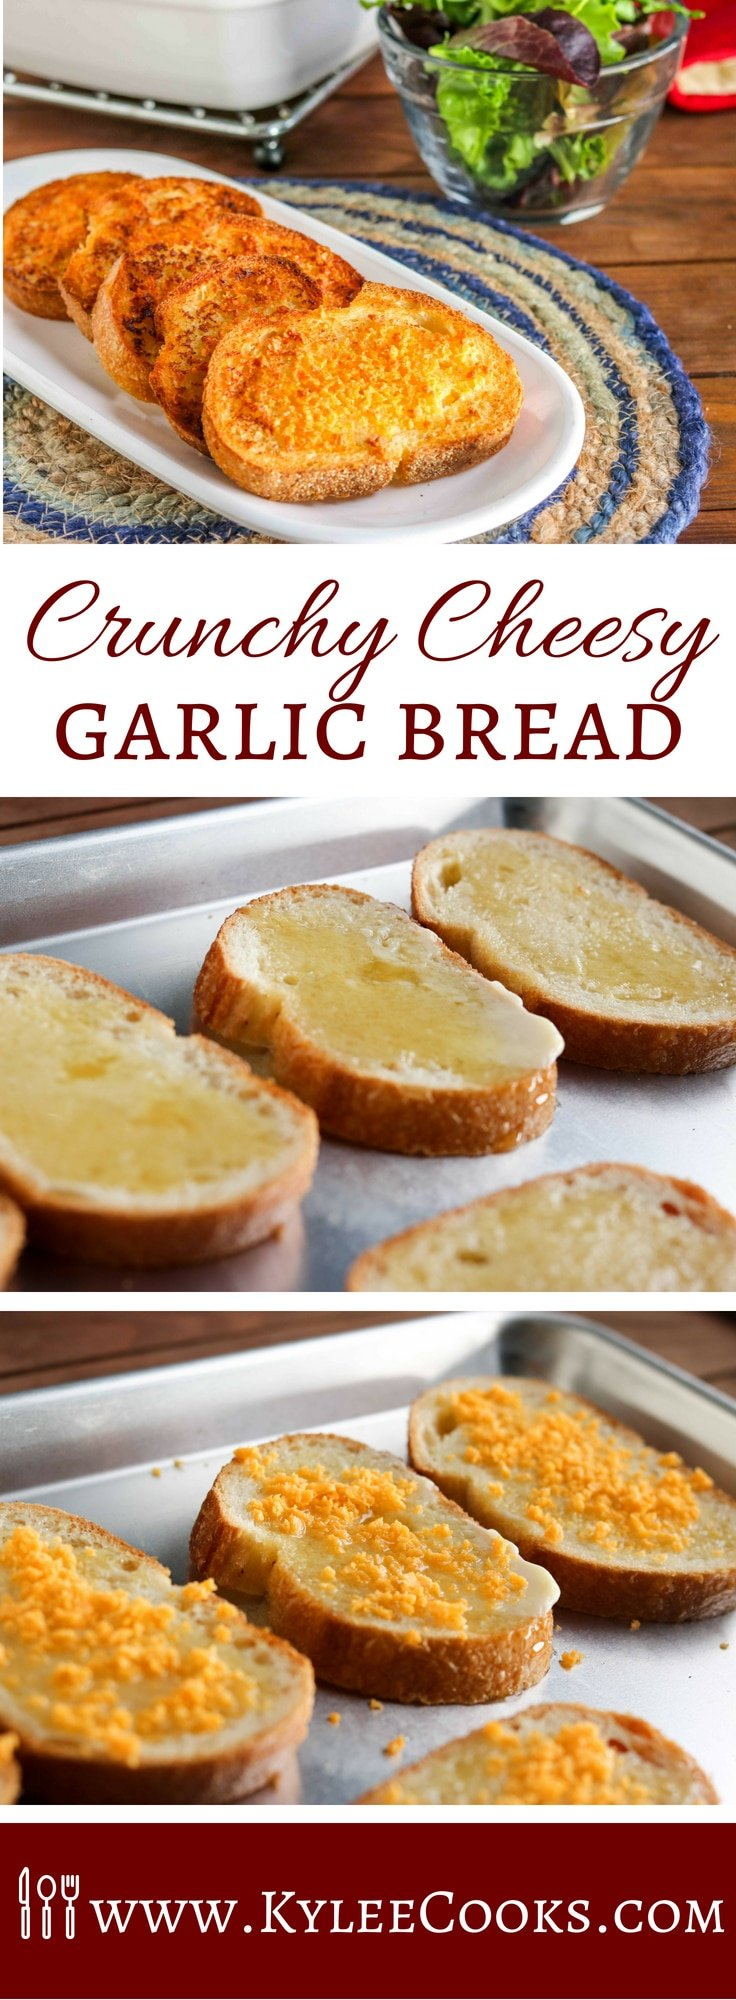 Want a fresh new (and crunchy) take on an old favorite? Check out my crunchy cheesy garlic bread. I challenge you to try to eat just the one slice! #momblogtourFF #MoonCheese @mooncheesesnack #ad